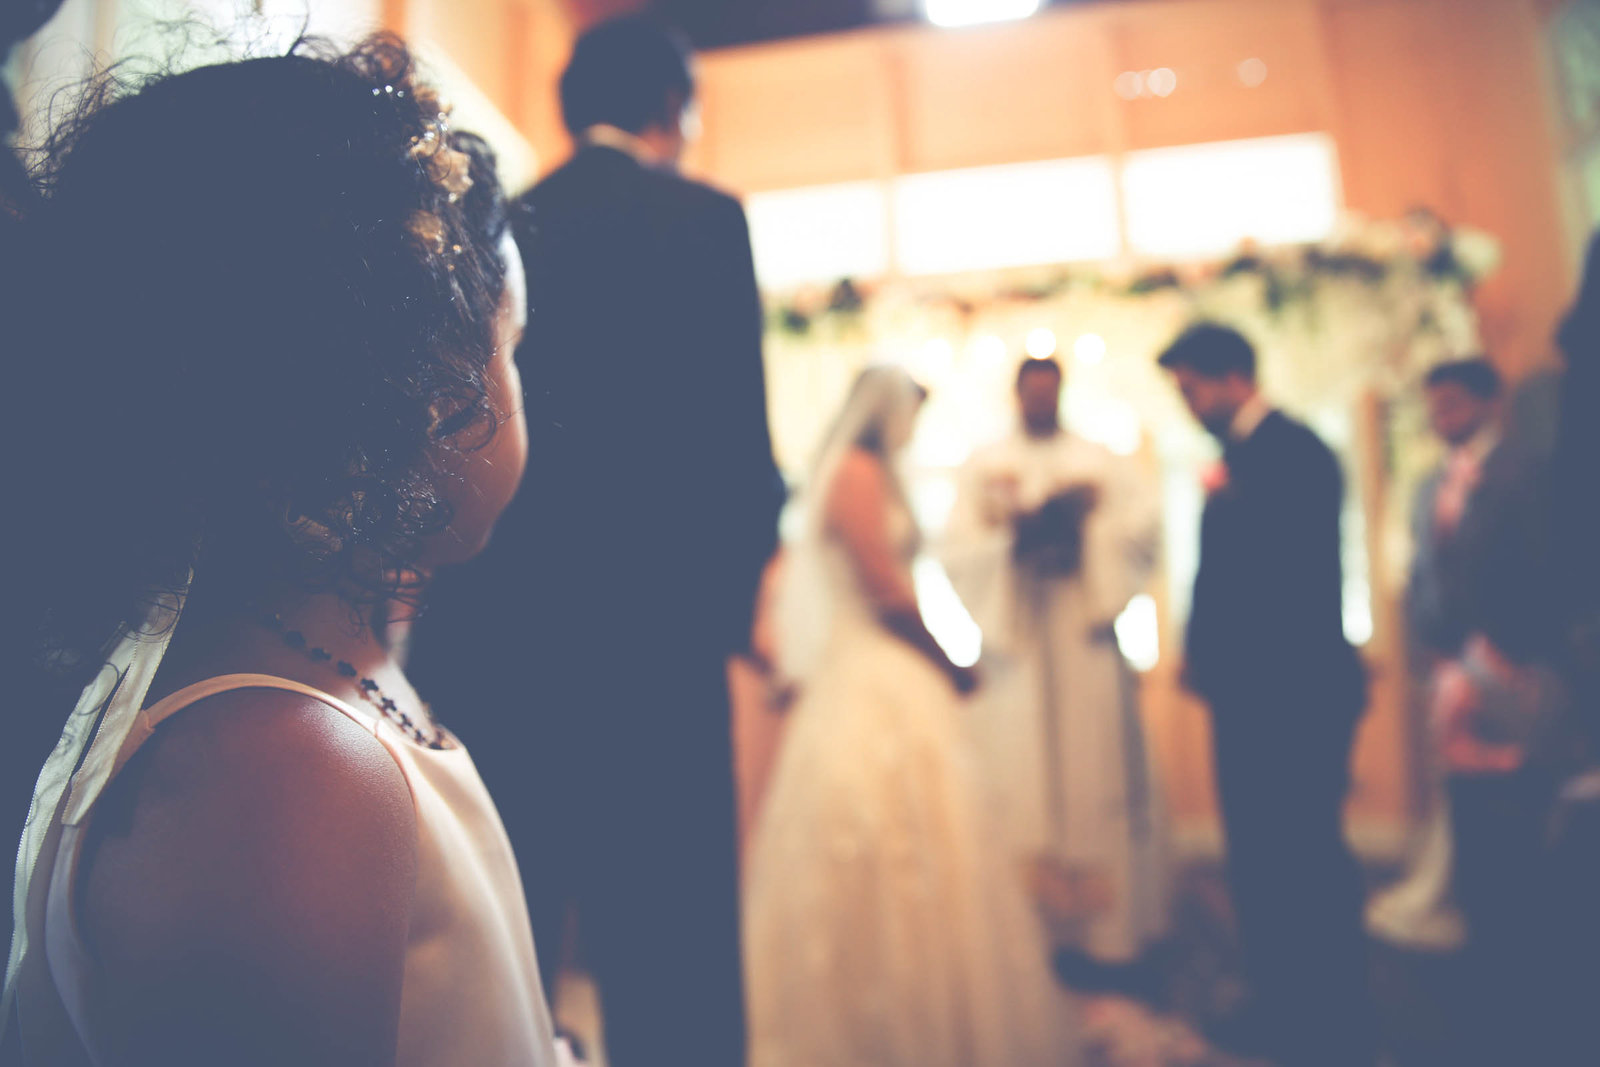 Little girl looks on as bride and groom get married. Photo by Ross Photography, Trinidad, W.I..